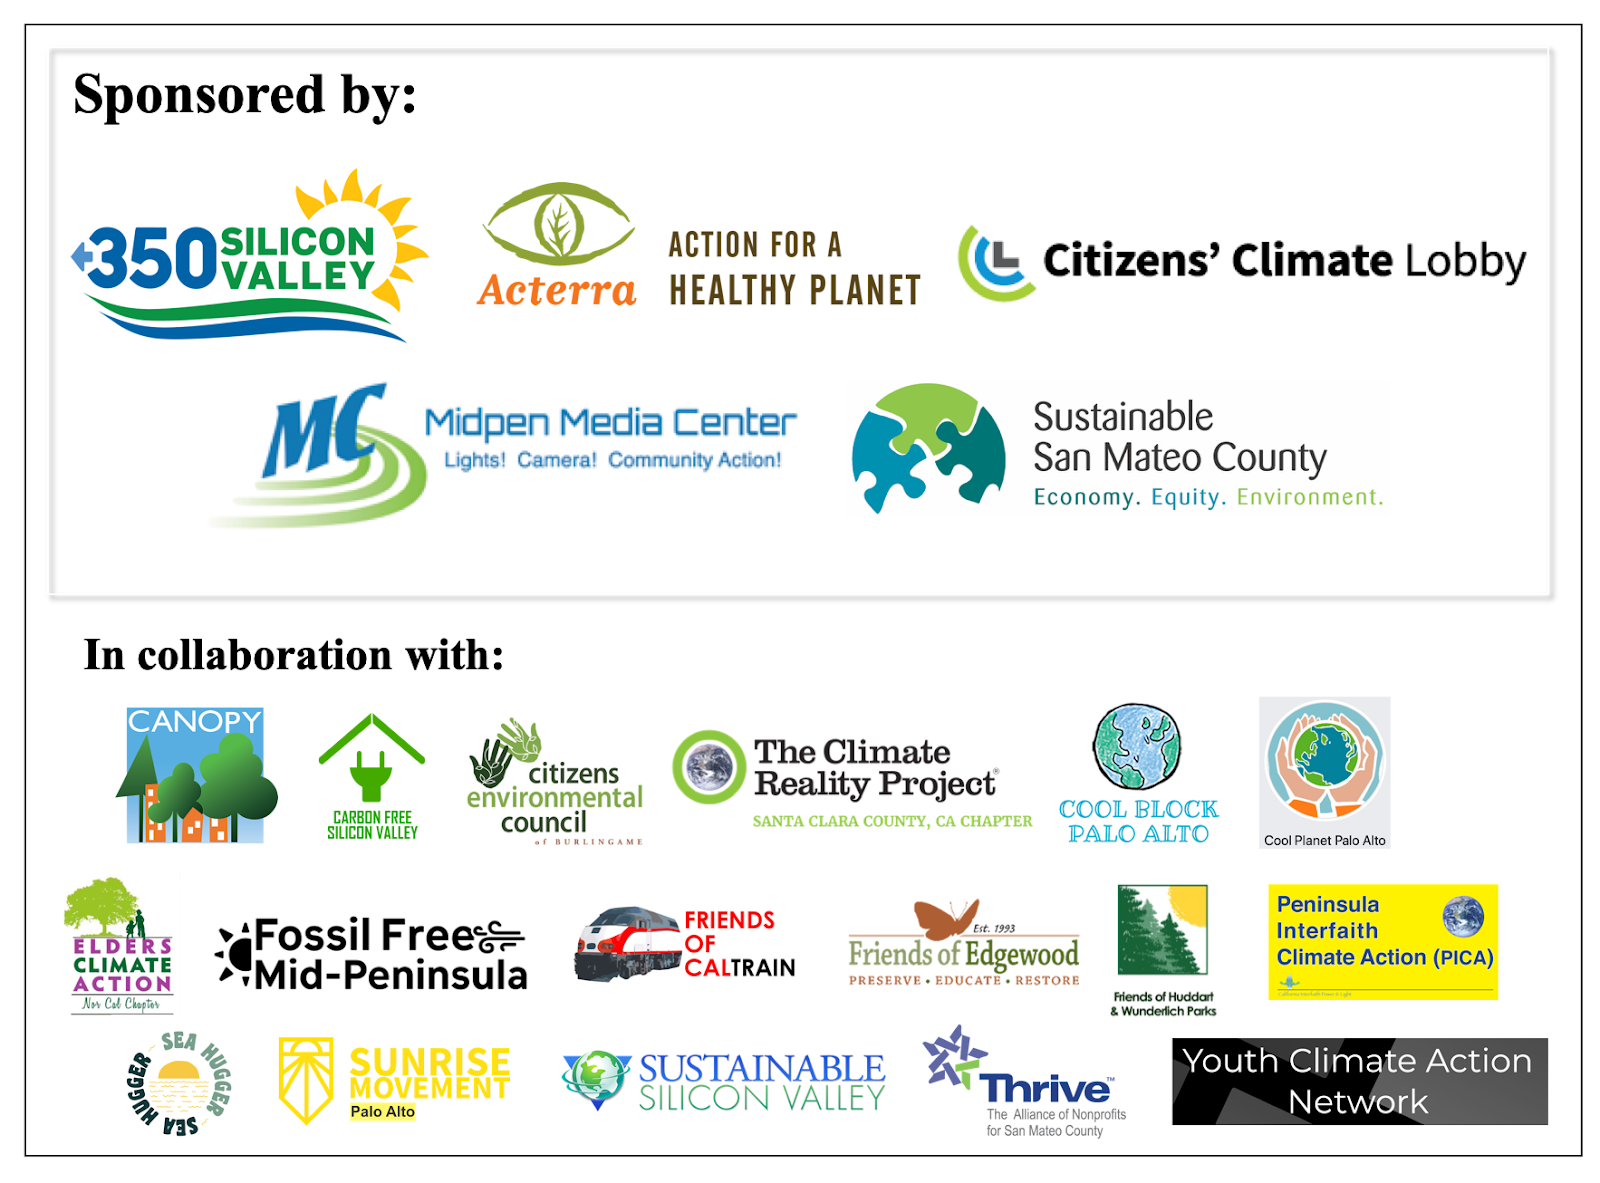 Sponsors and Participating Organizations